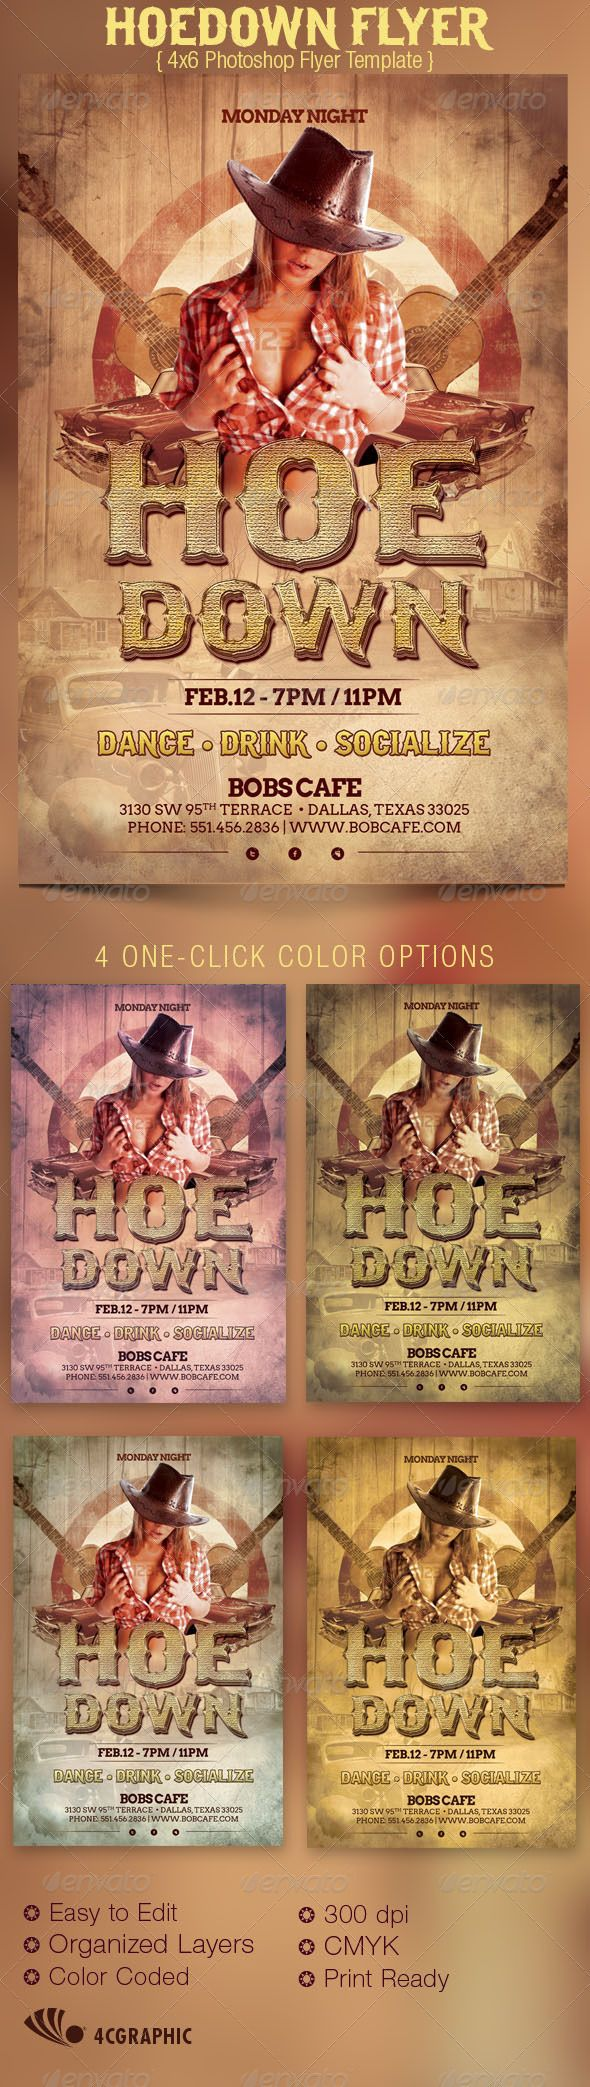 Hoedown Country Flyer Template | Flyer template and Print ...